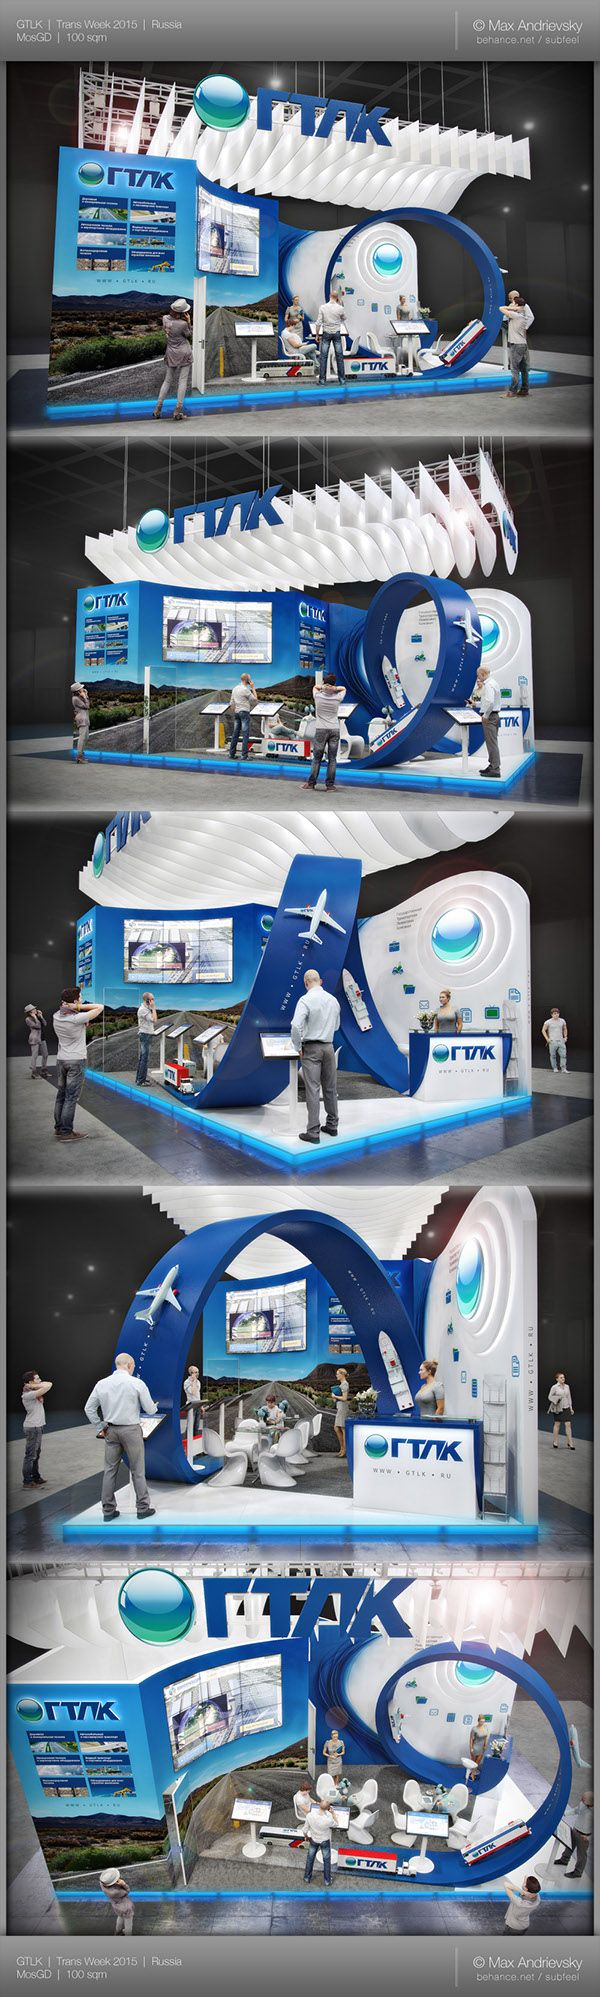 7 best 展厅 images on Pinterest | Exhibition booth design, Exhibit ...